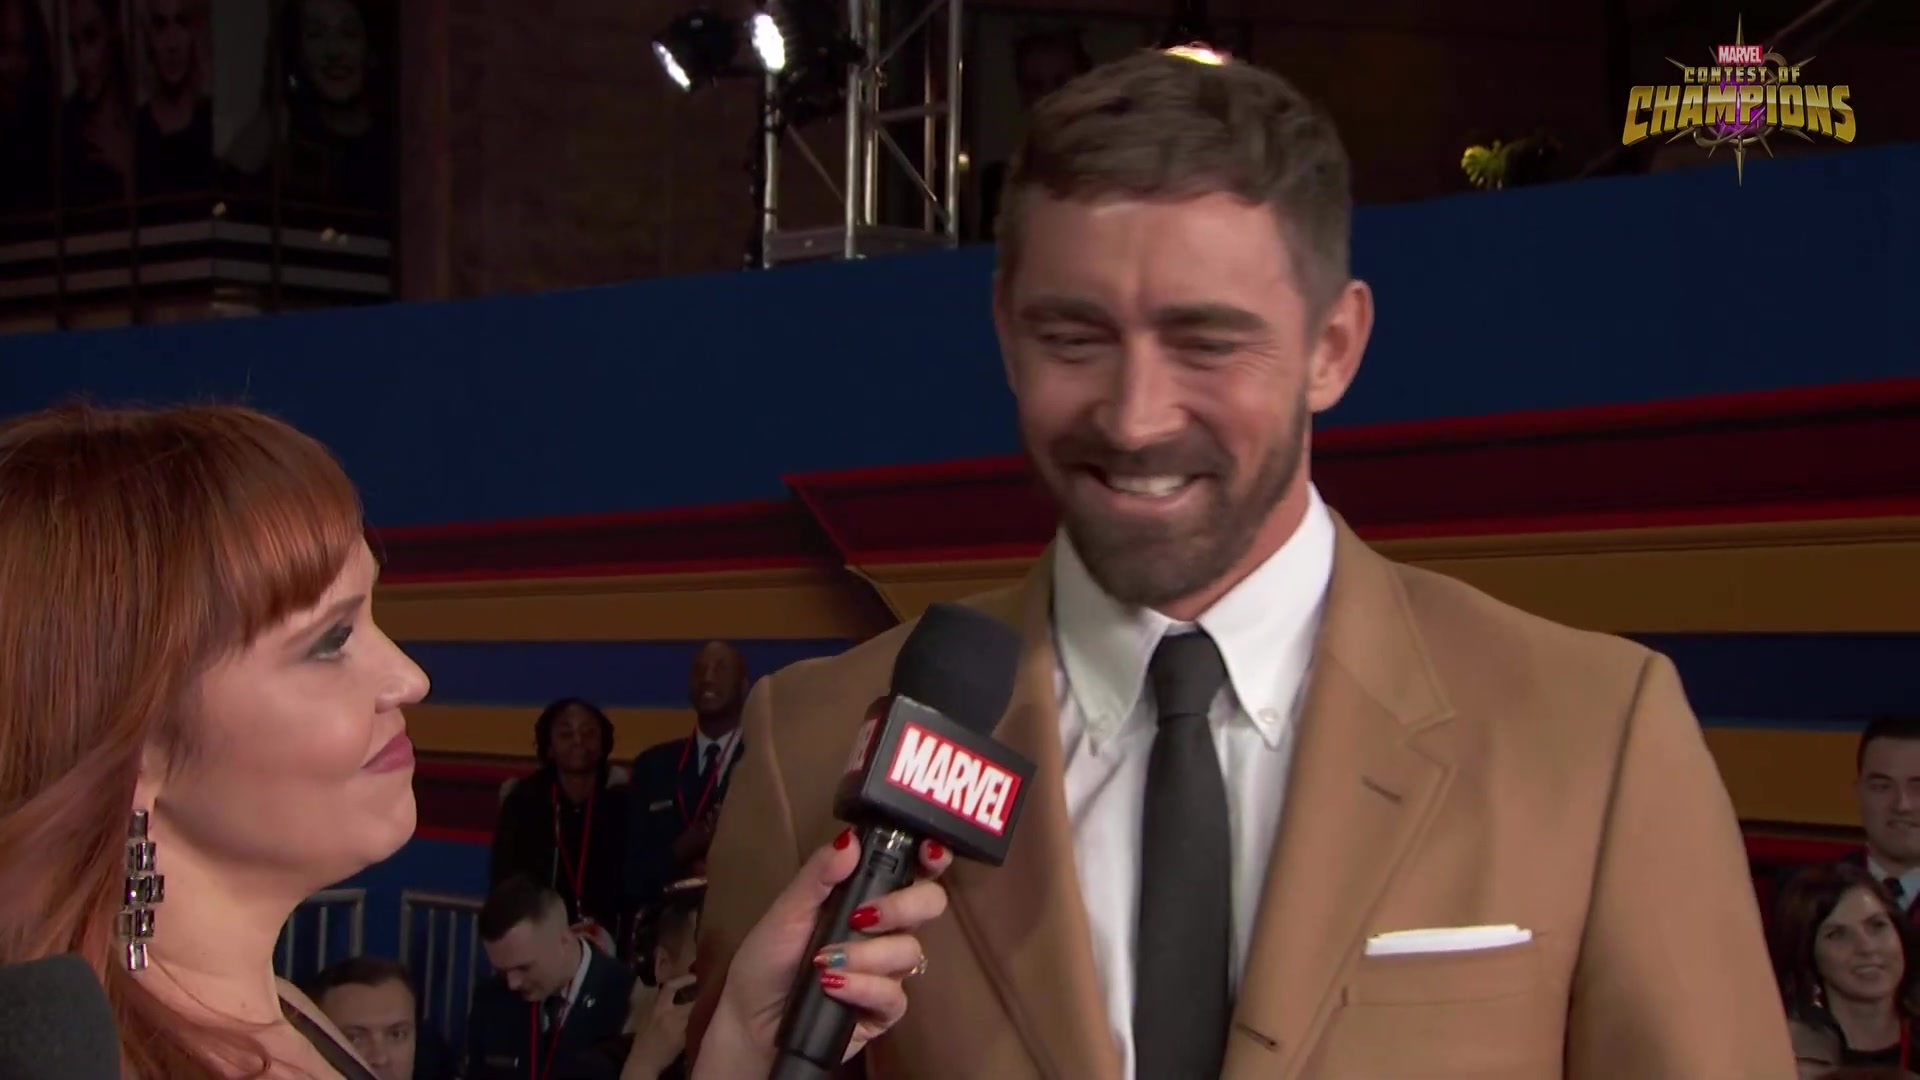 李佩斯-惊奇队长世界首映LA红毯采访 Lee Pace arrives at the Captain Marvel Red Carpet Premiere